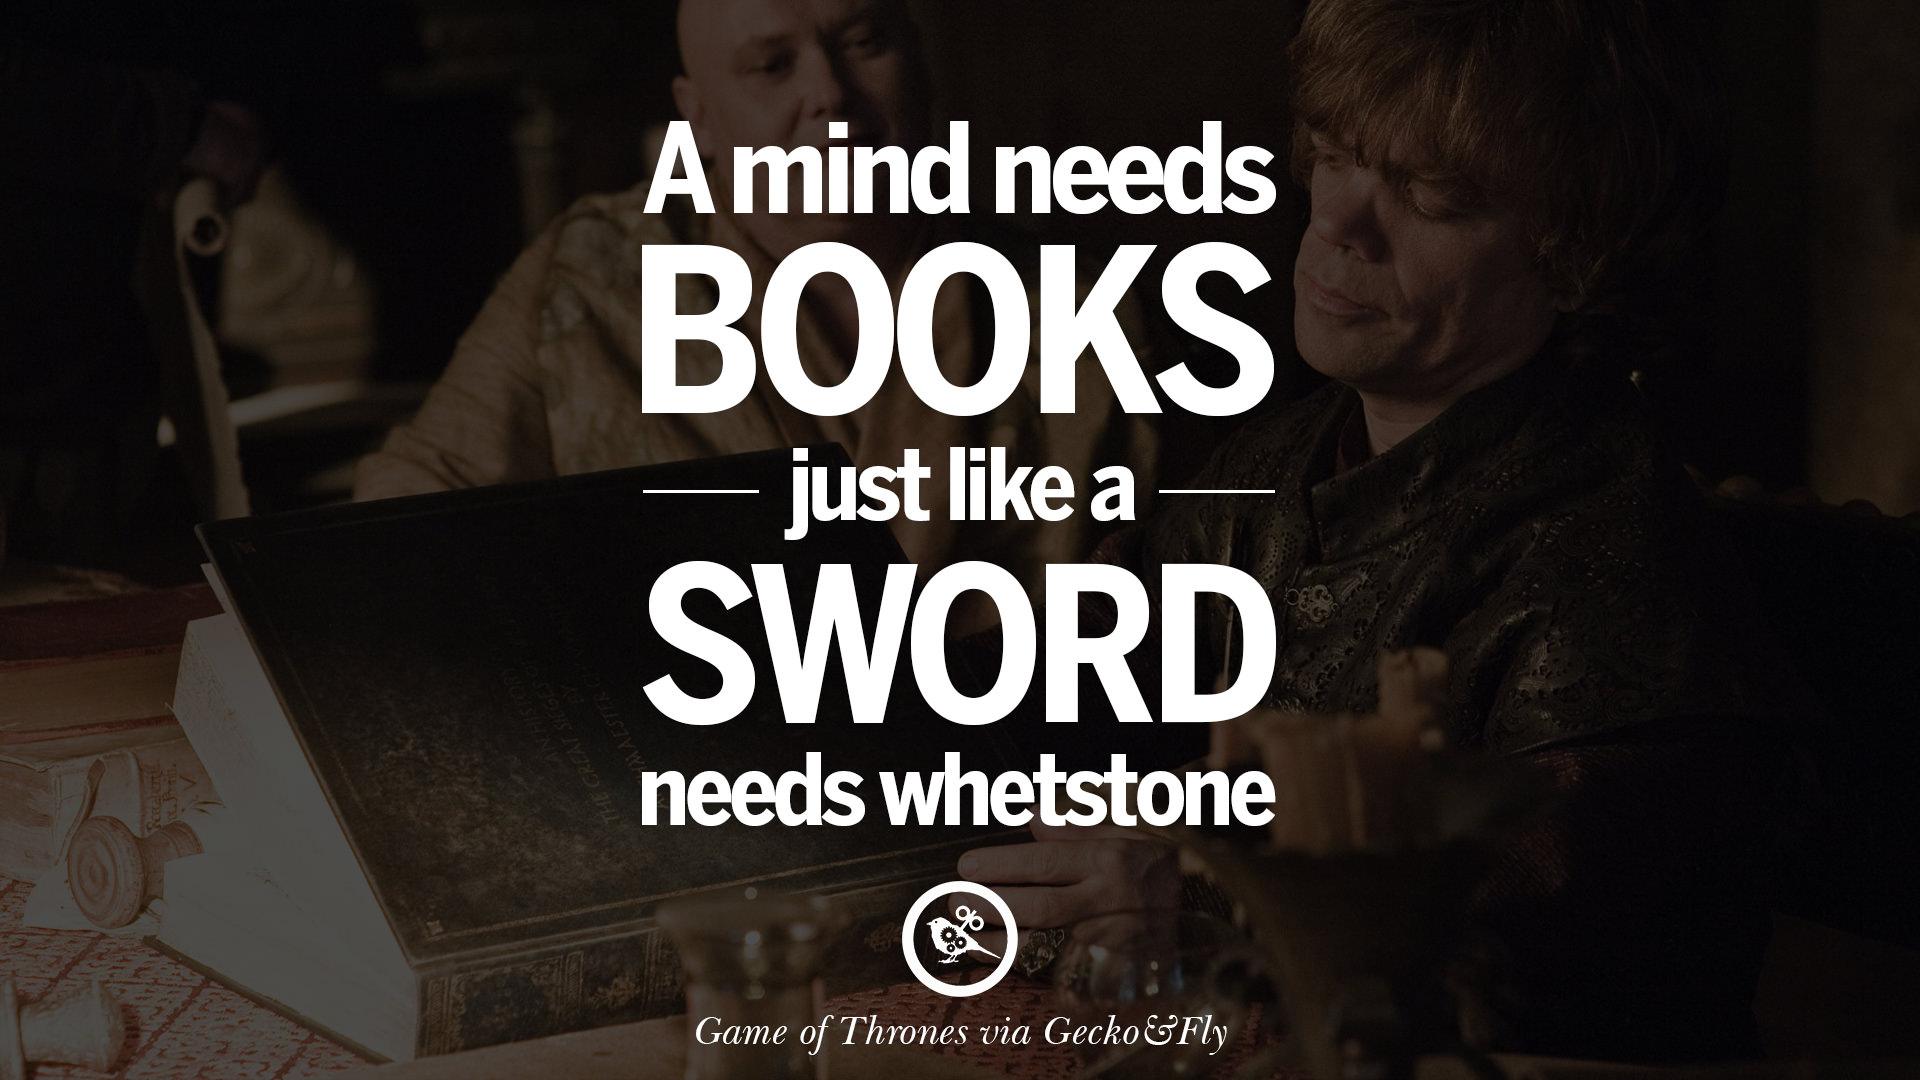 Memorable Quotes 15 Memorable Game Of Thrones Quotesgeorge Martin On Love